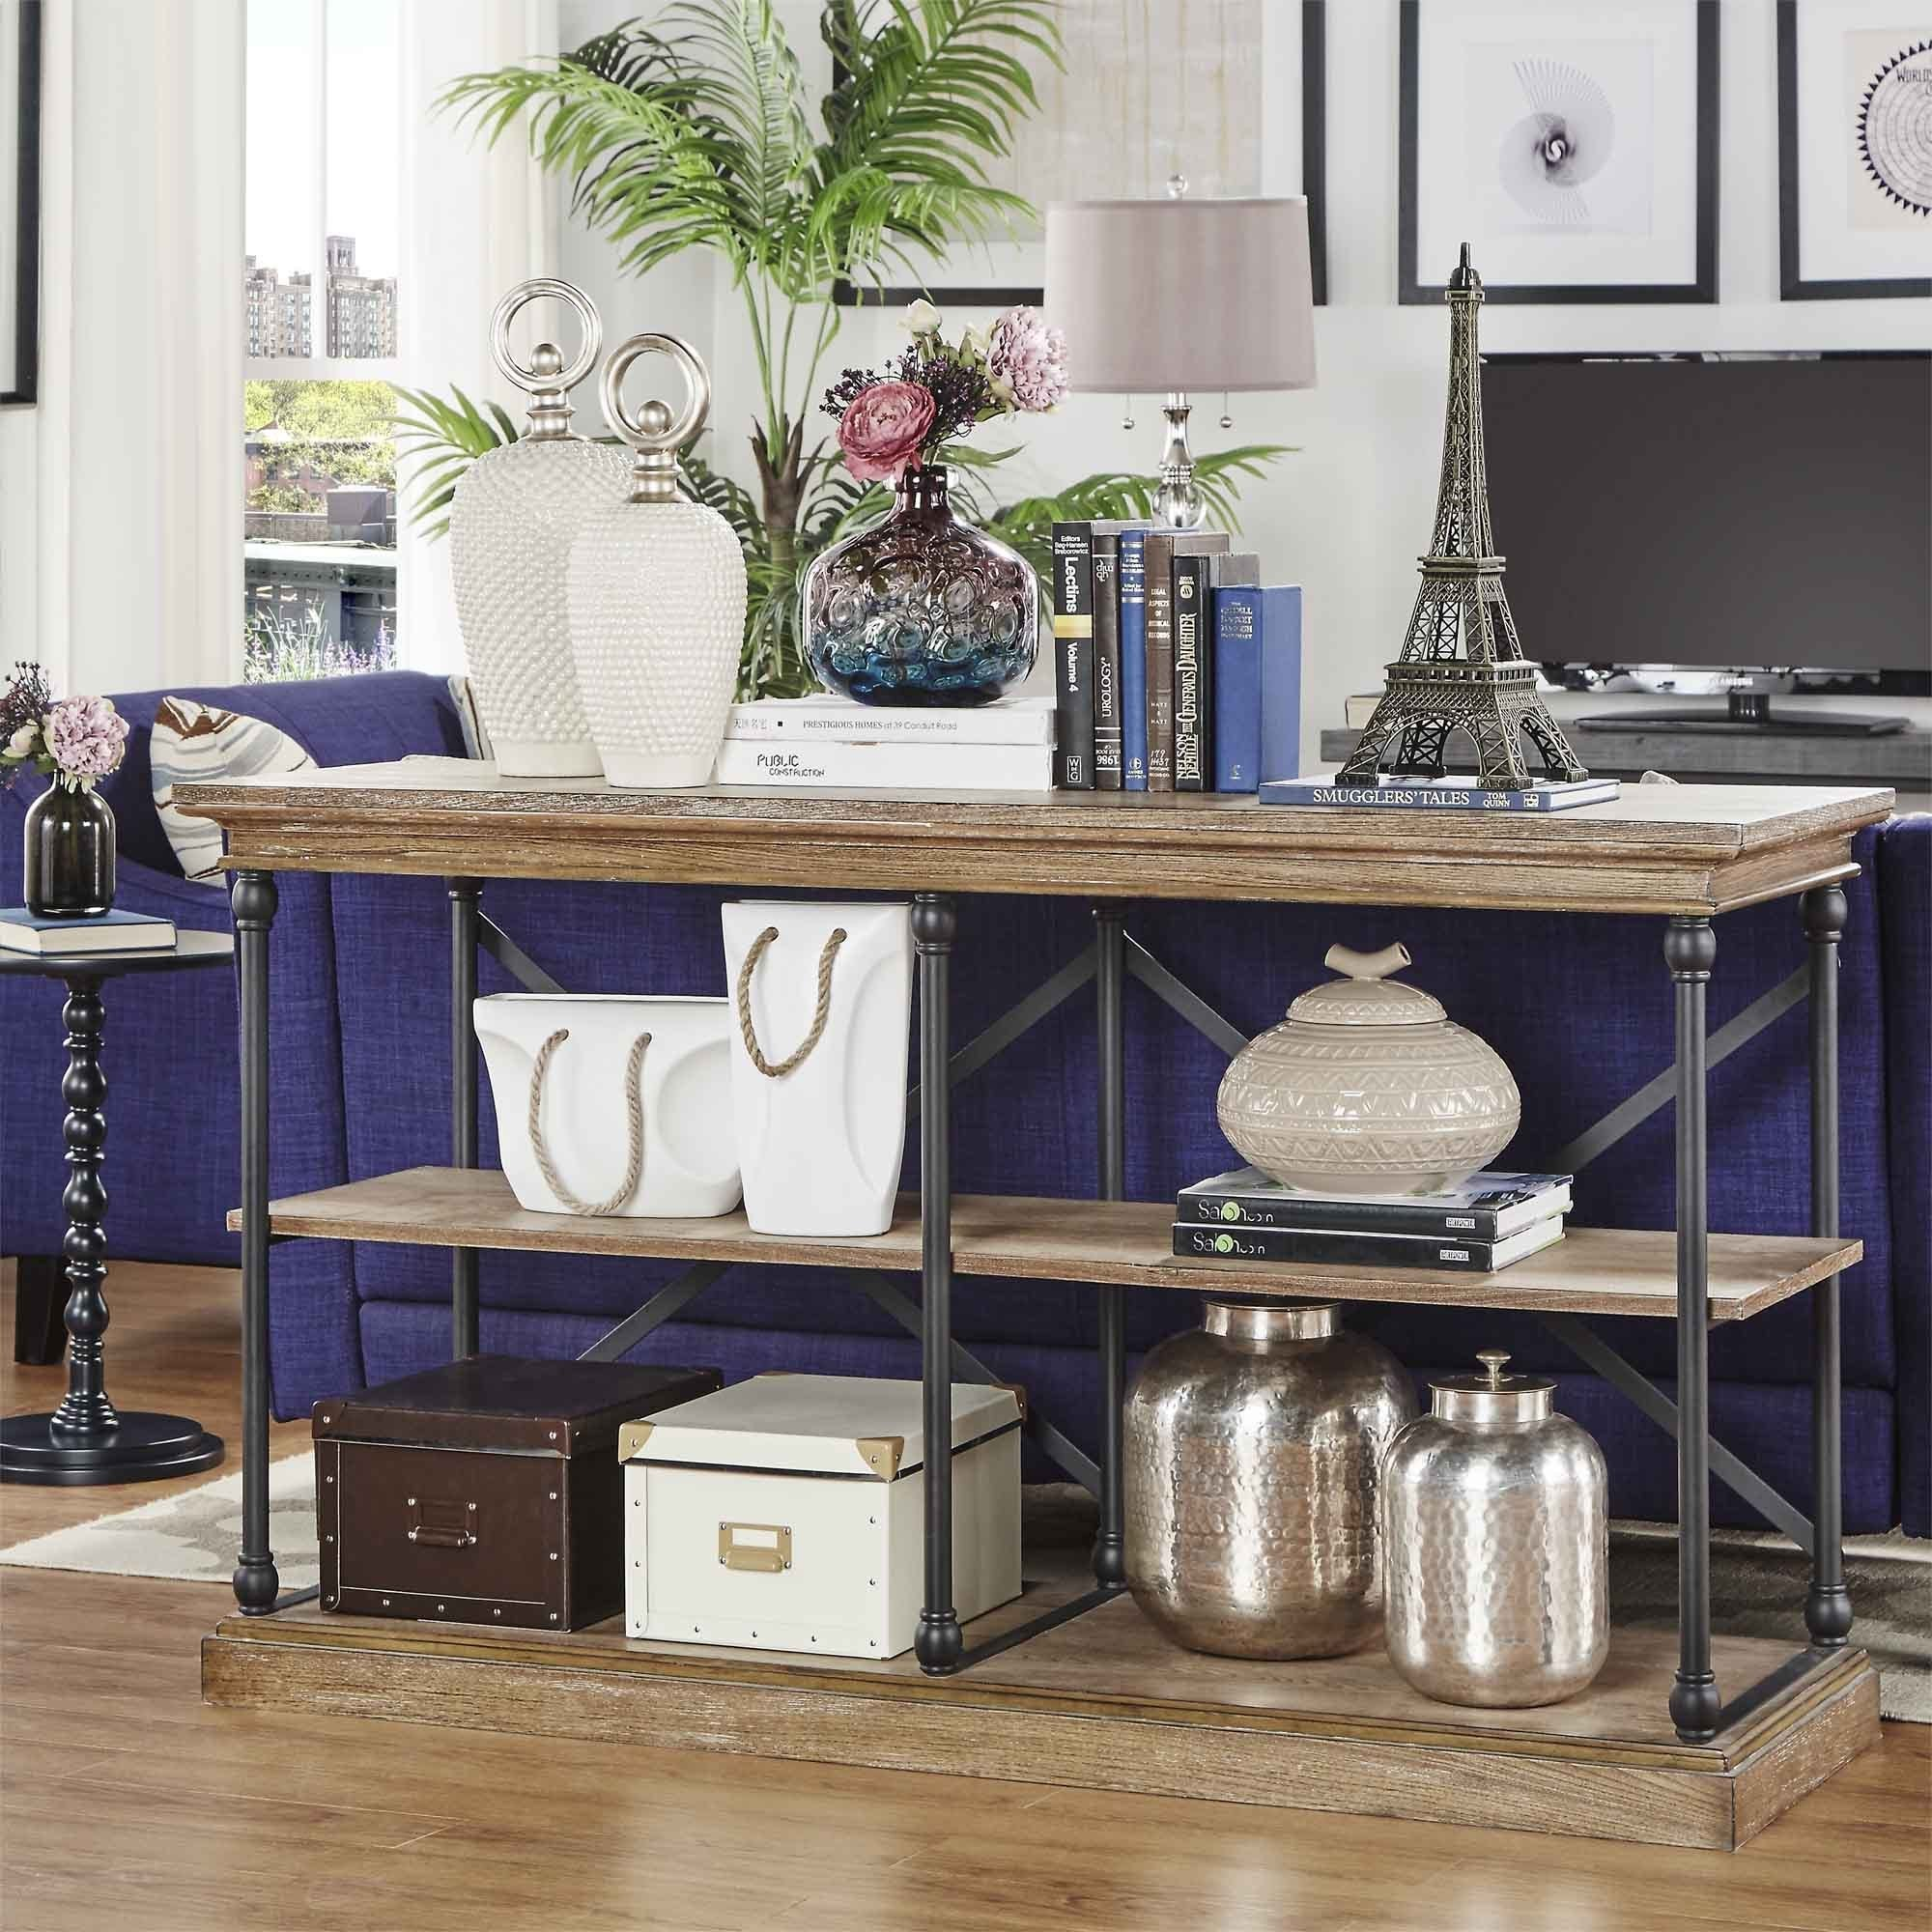 Barnstone-Cornice-Iron-and-Wood-Entryway-Console-Table-